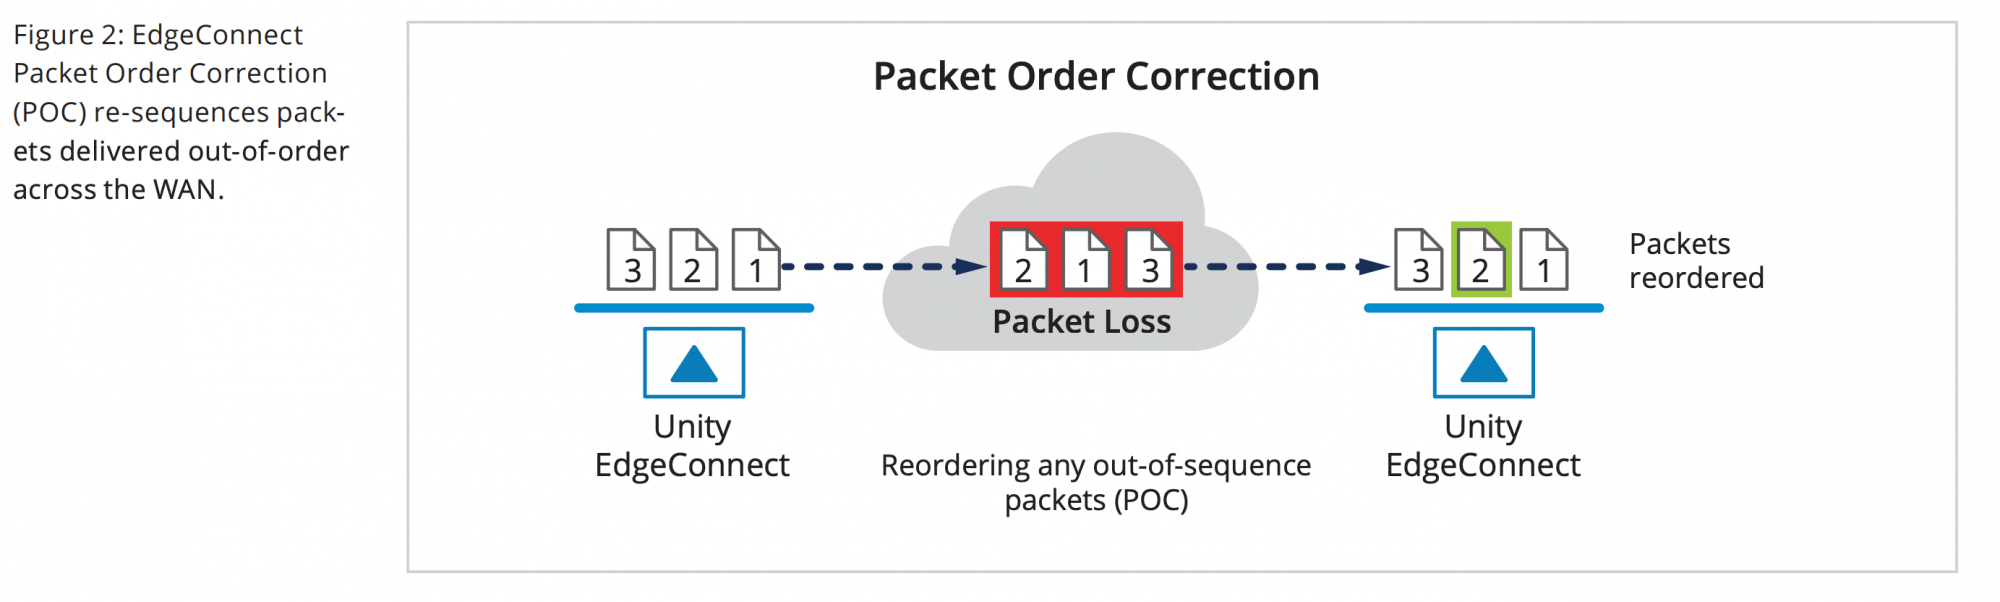 Figure 2: EdgeConnect Packet Order Correction (POC) re sequences packets delivered out-of-order across the WAN.